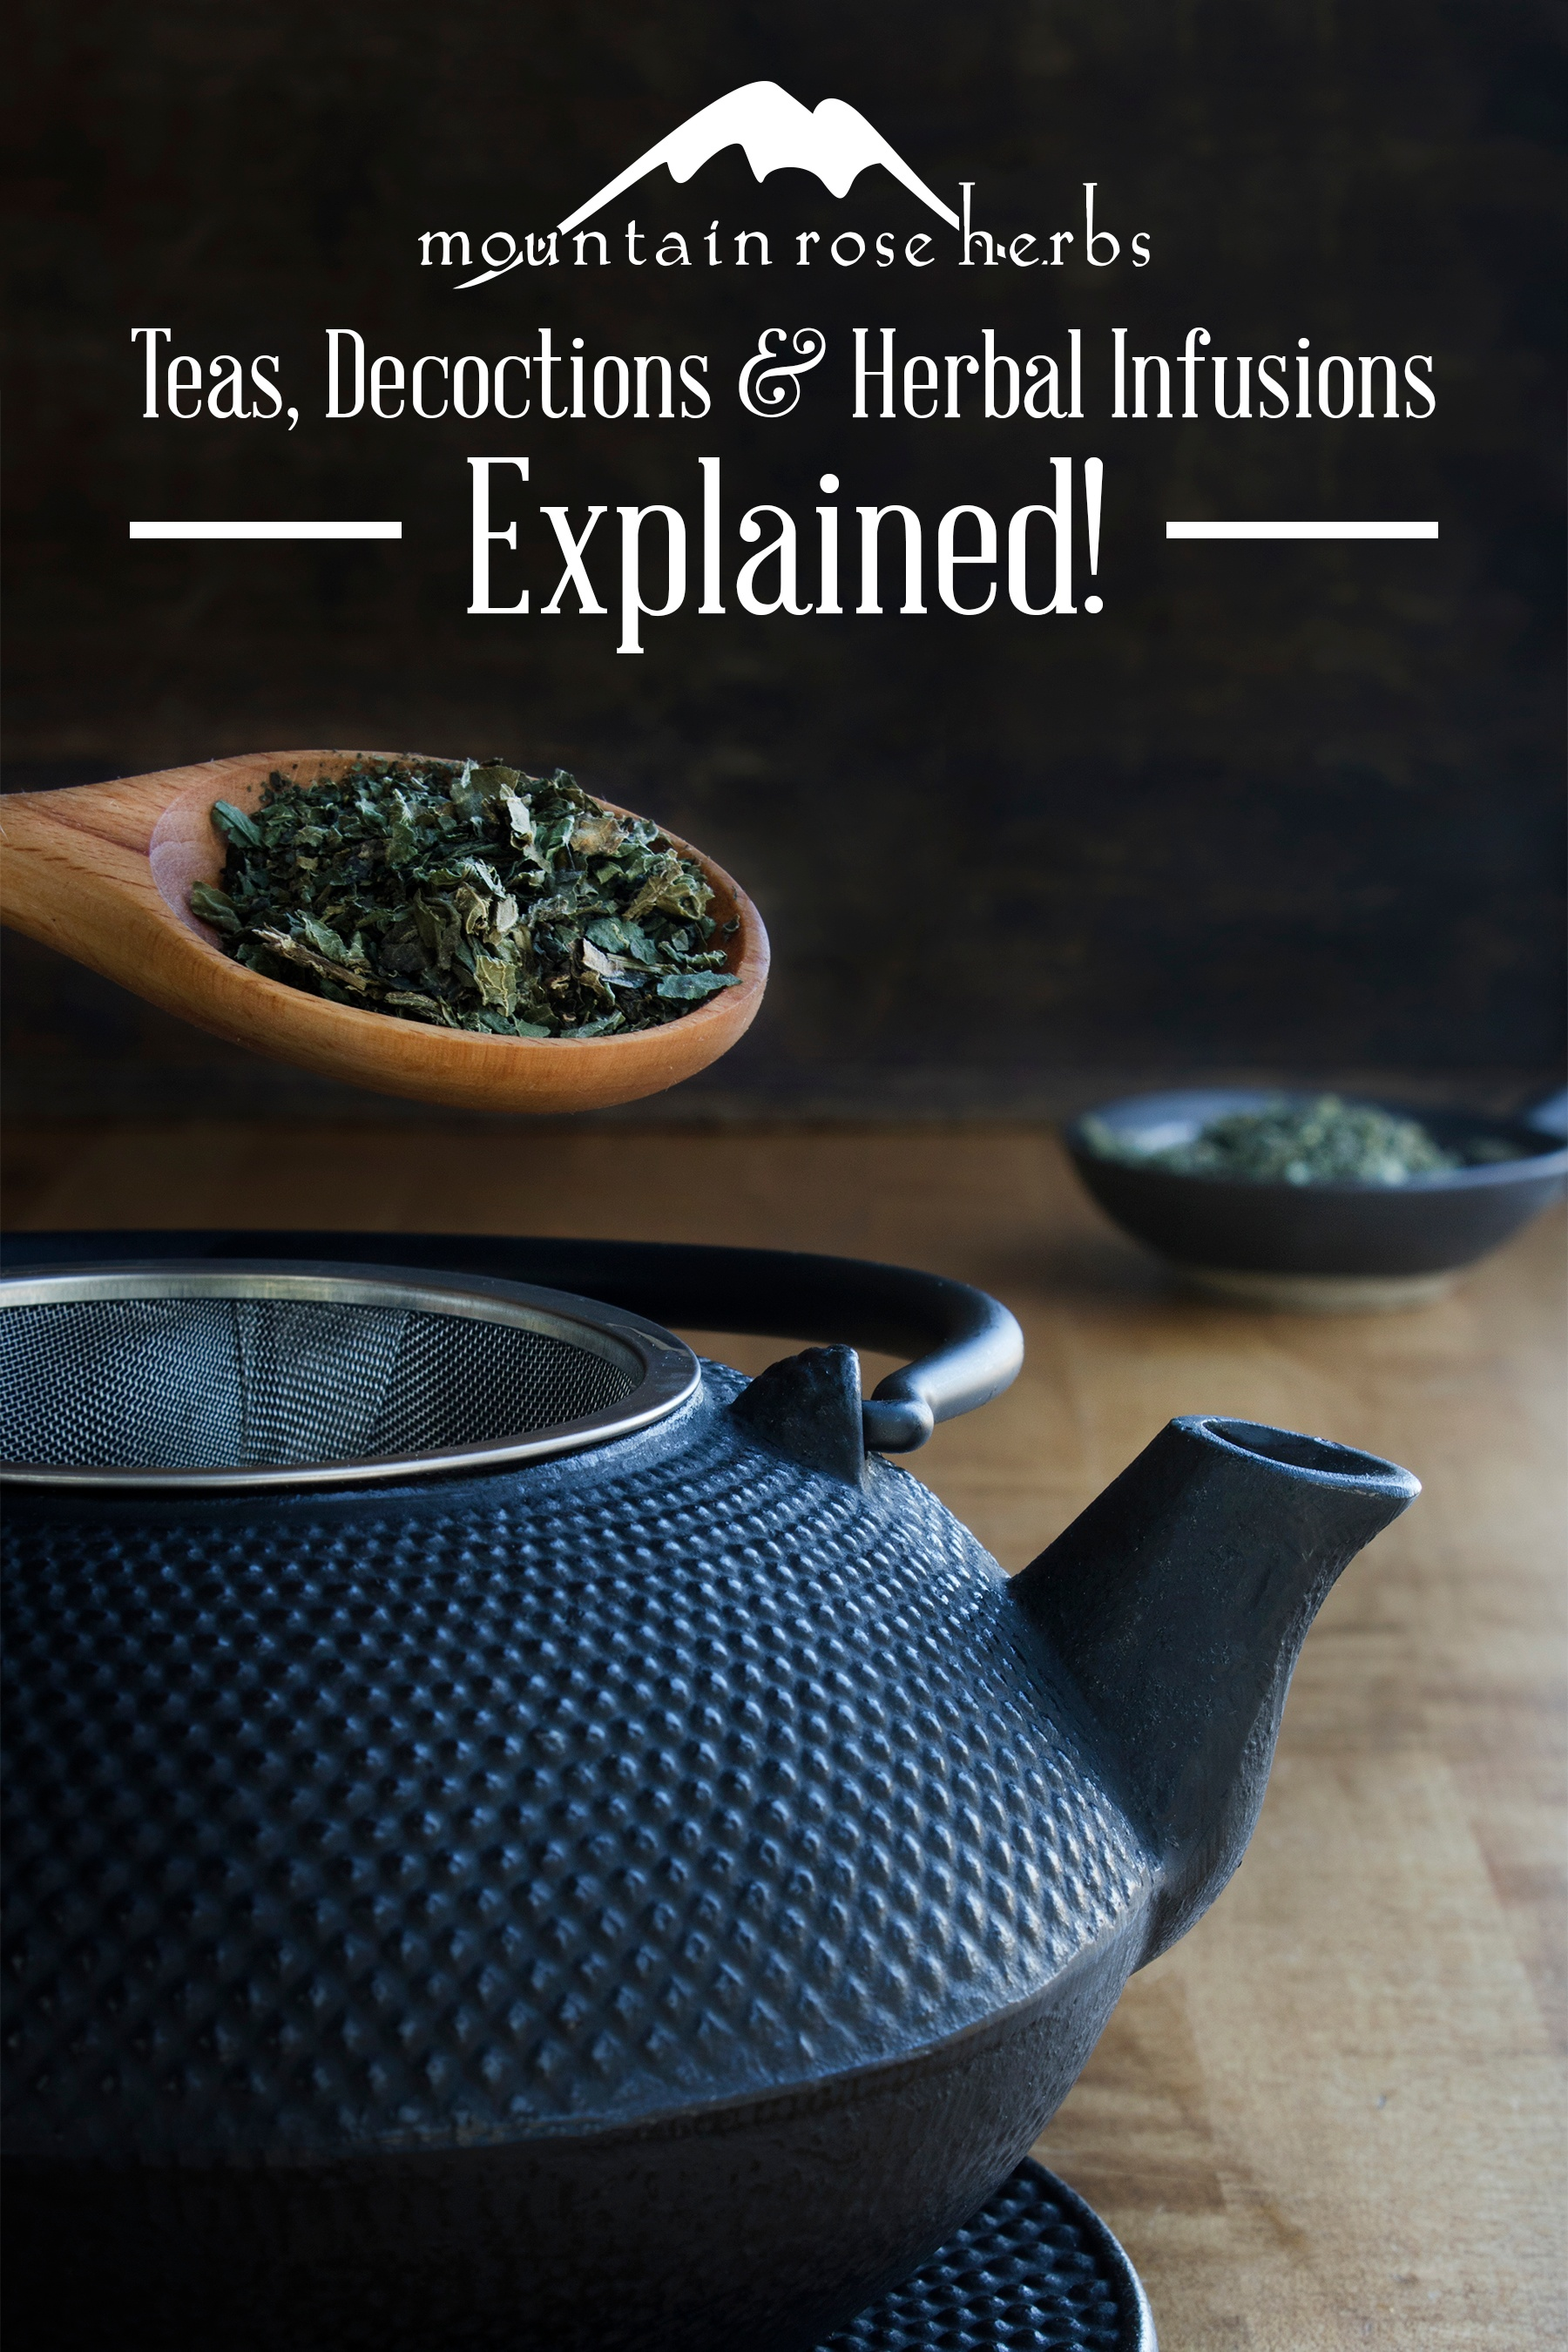 Pin for Teas, Decoctions and Herbal Infusions Explained from Mountain Rose Herbs